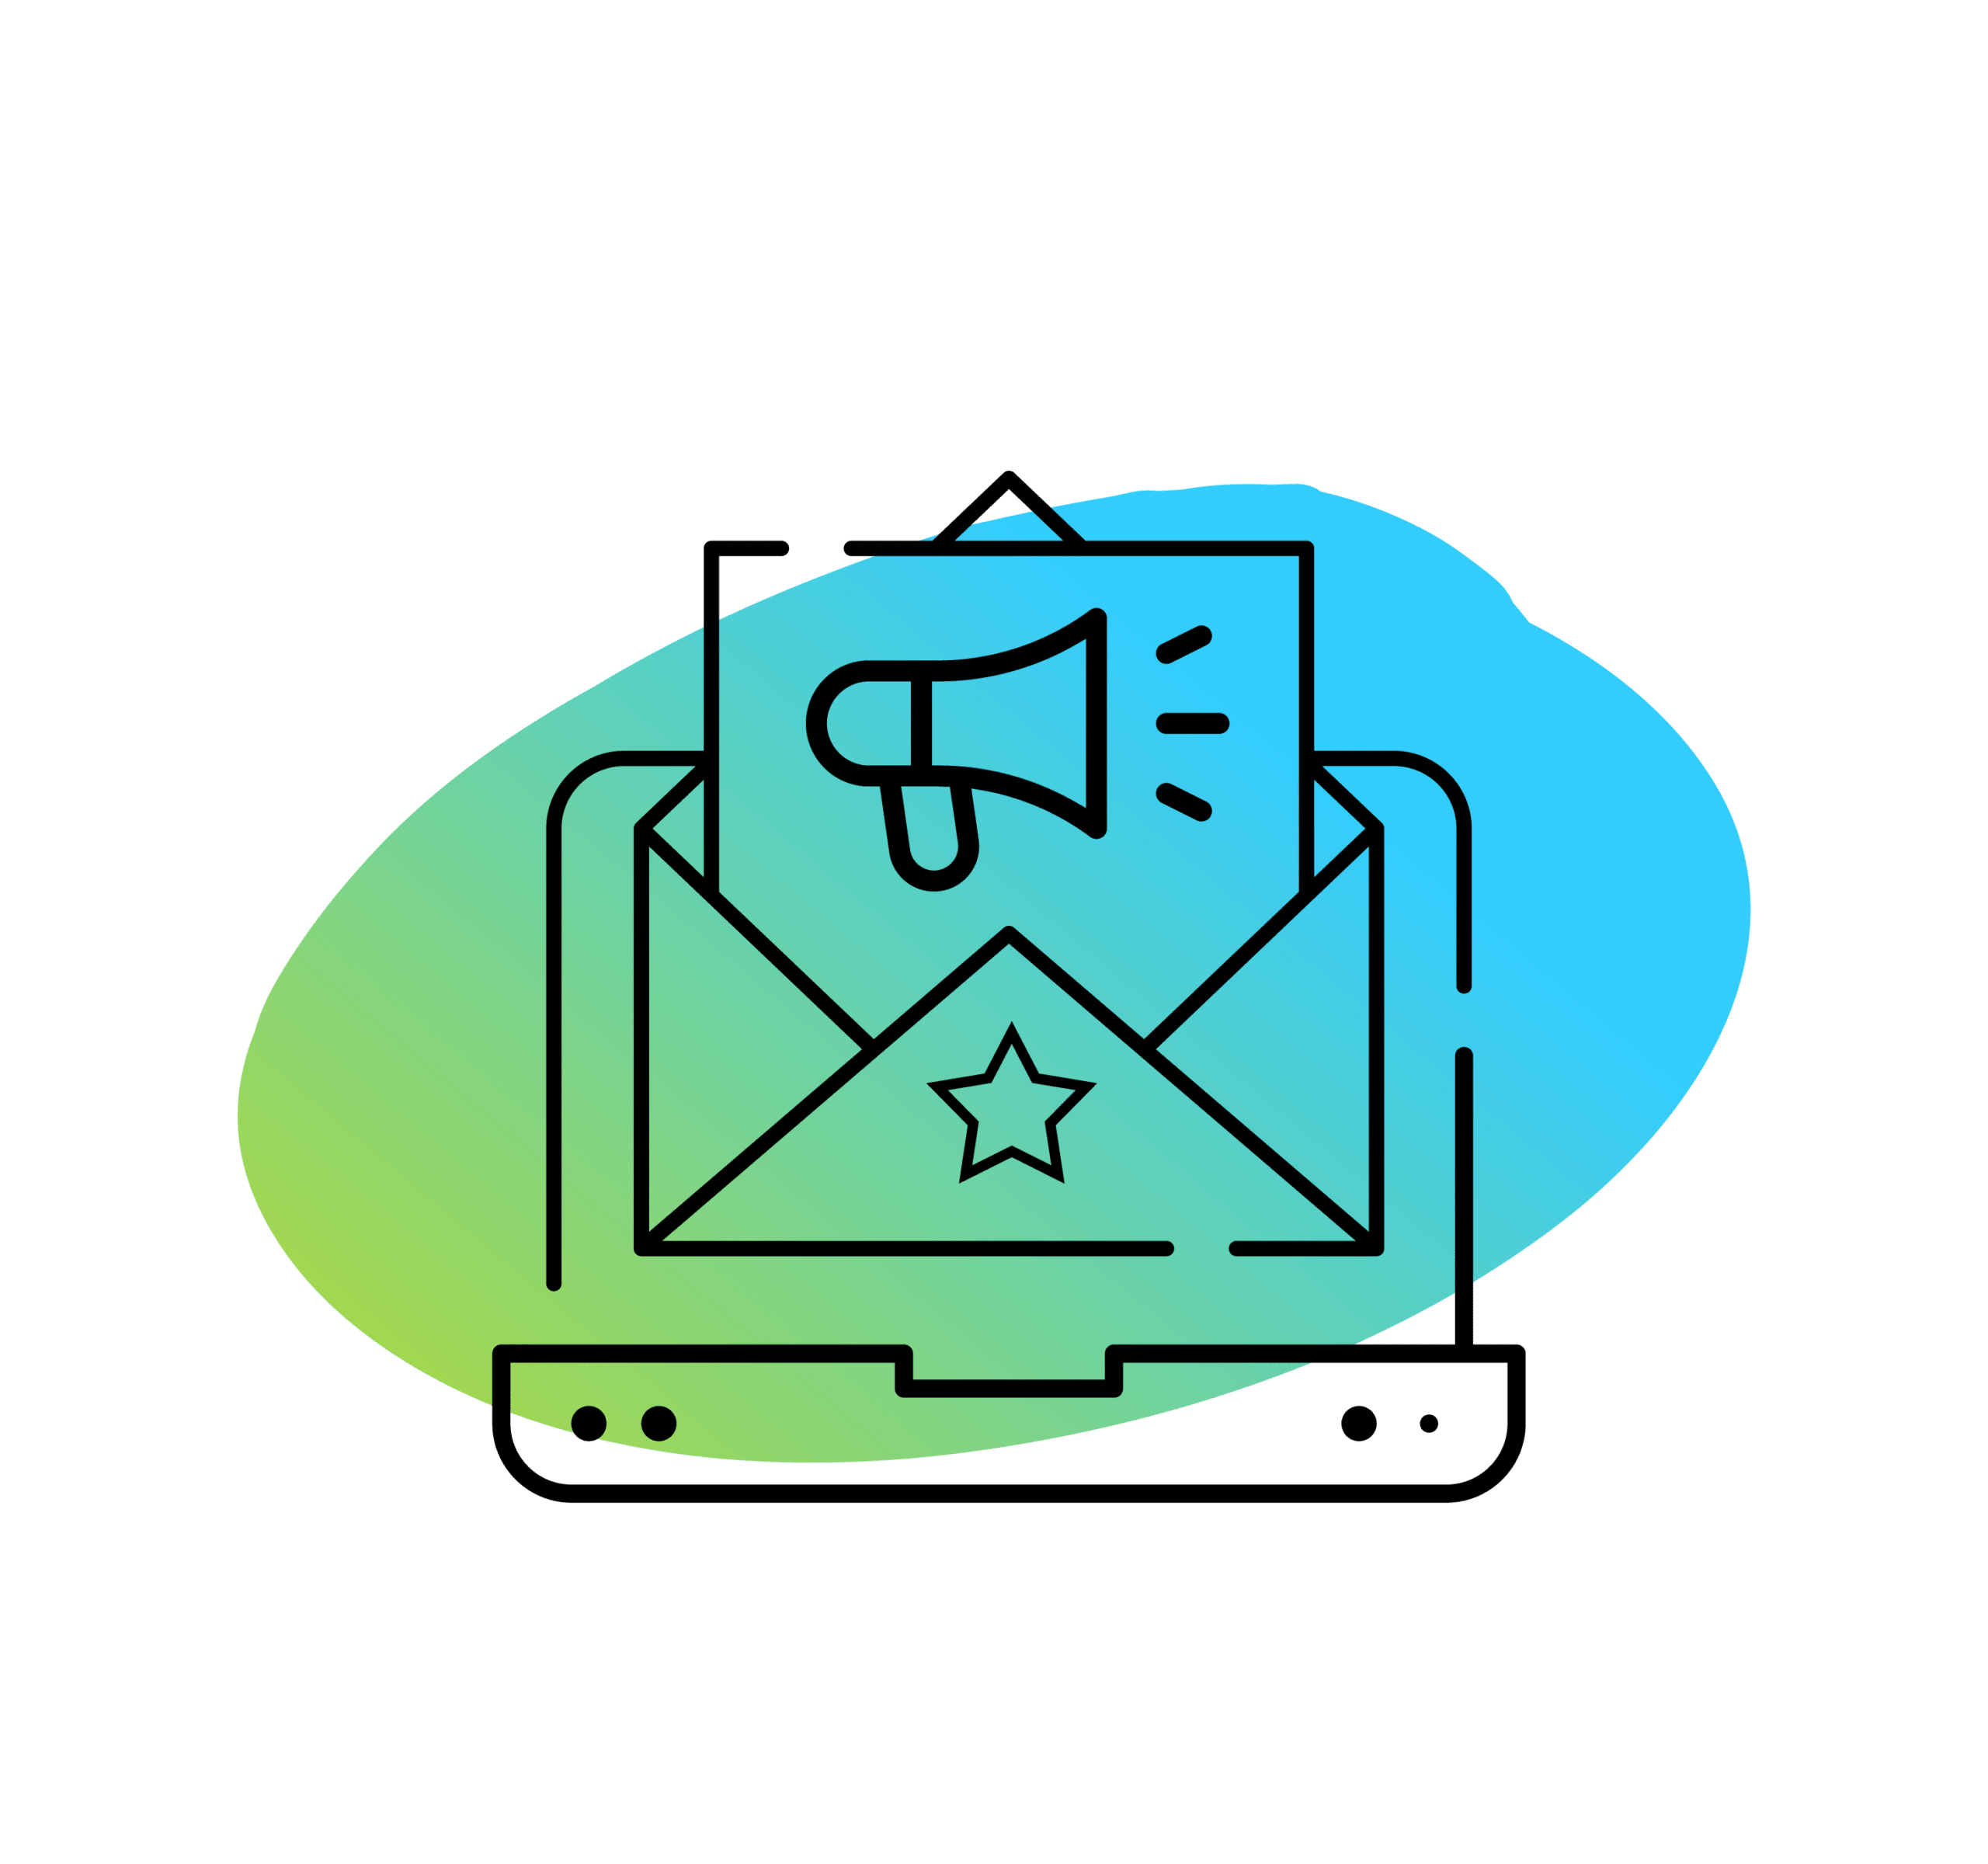 LBM - Additional Icons Needed for Website_75685_email marketing